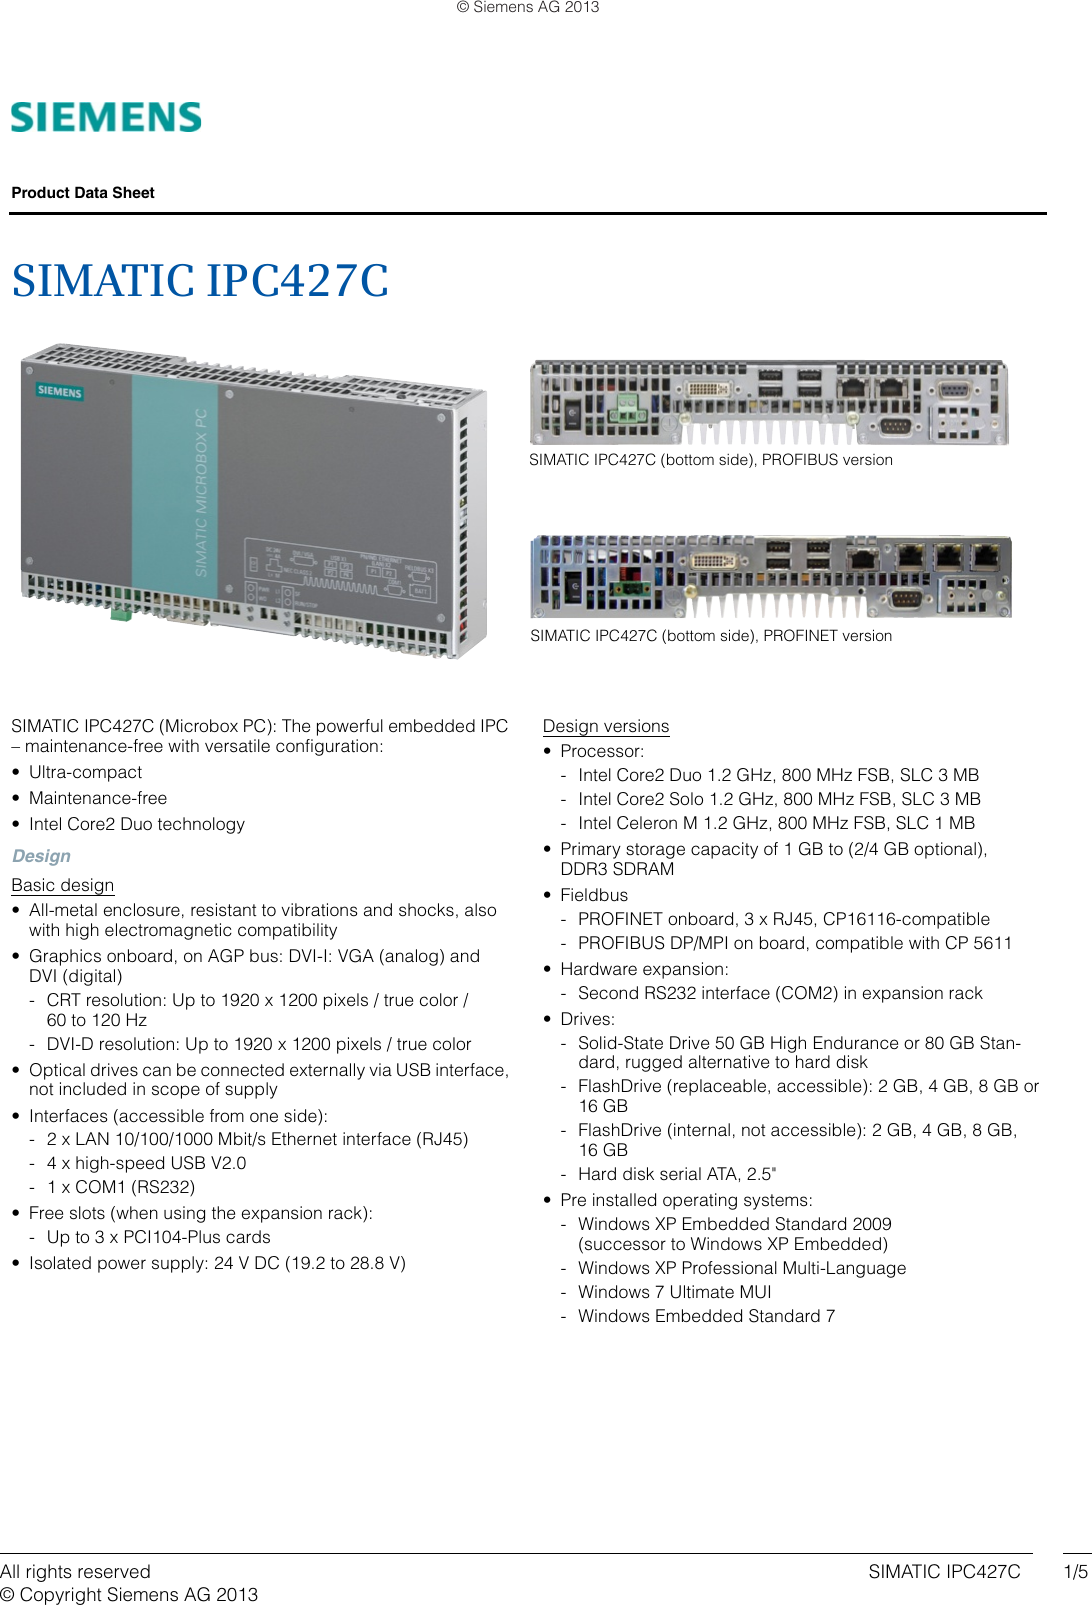 Siemens Personal Computer Ipc427C Users Manual IndustrialPC